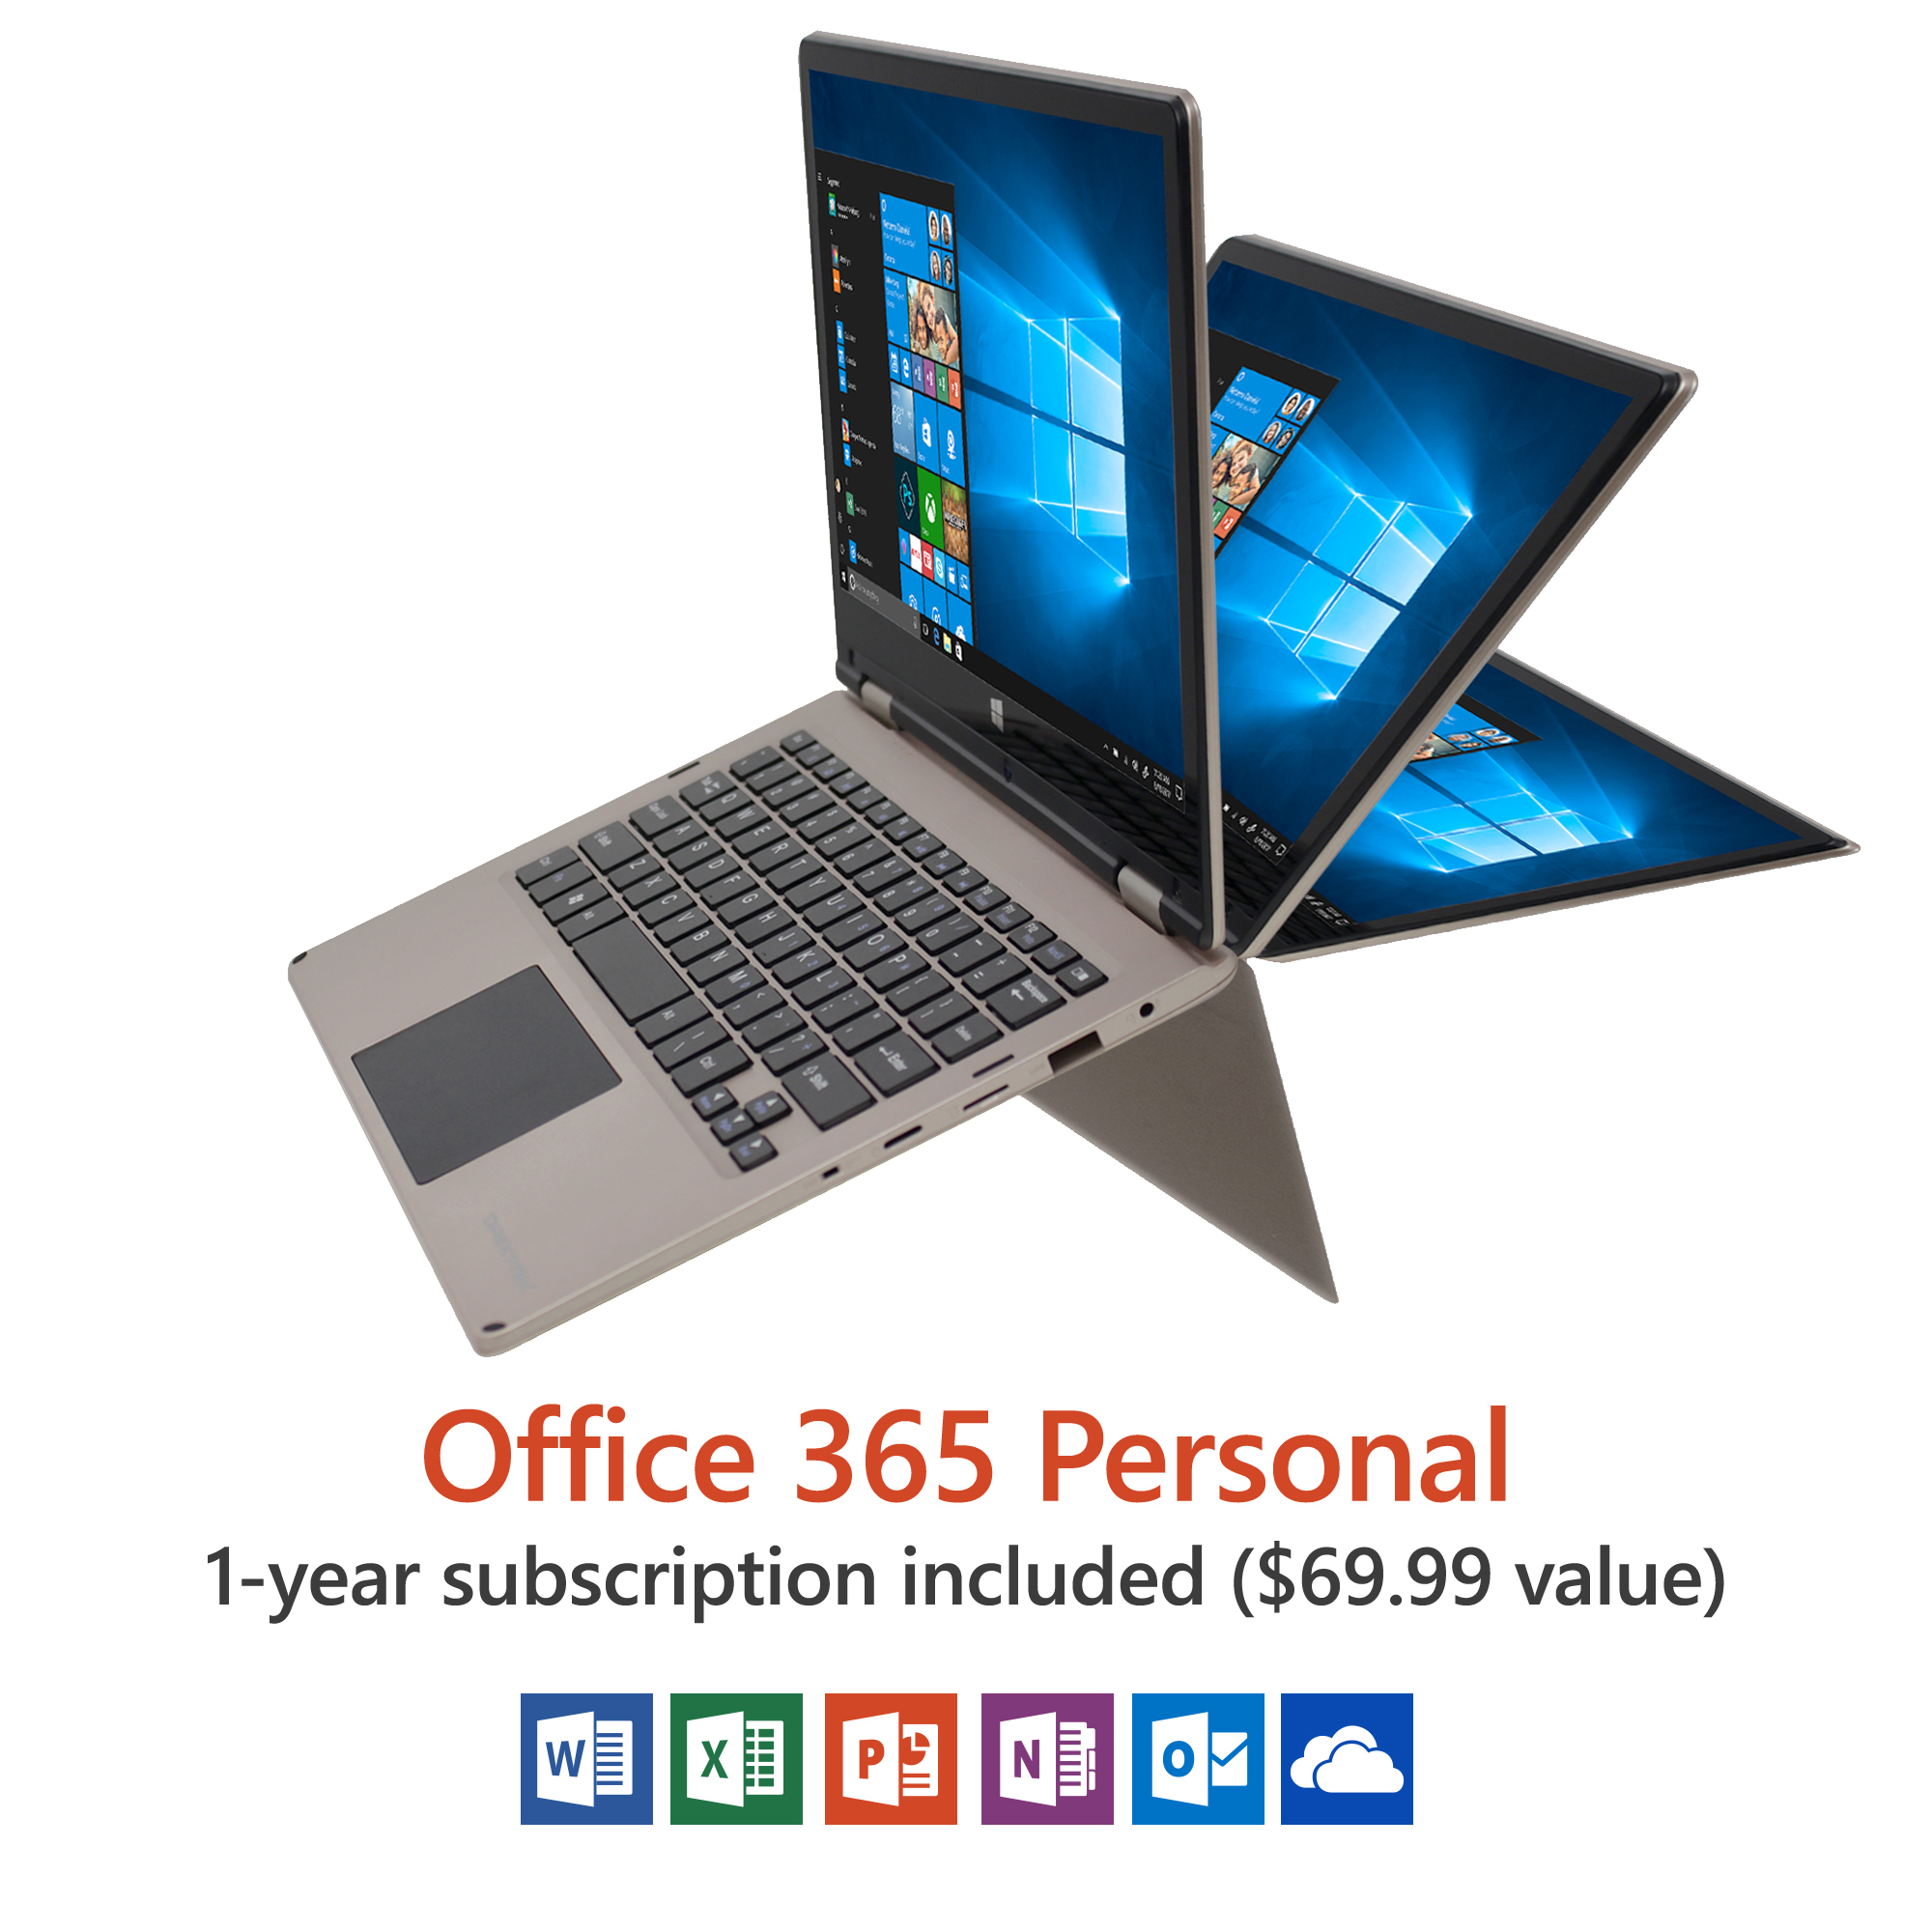 "11.6"" Convertible Touchscreen Laptop, Windows 10 Home, Office 365 Personal 1-Year Subscription Included... by Direkt-Tek"